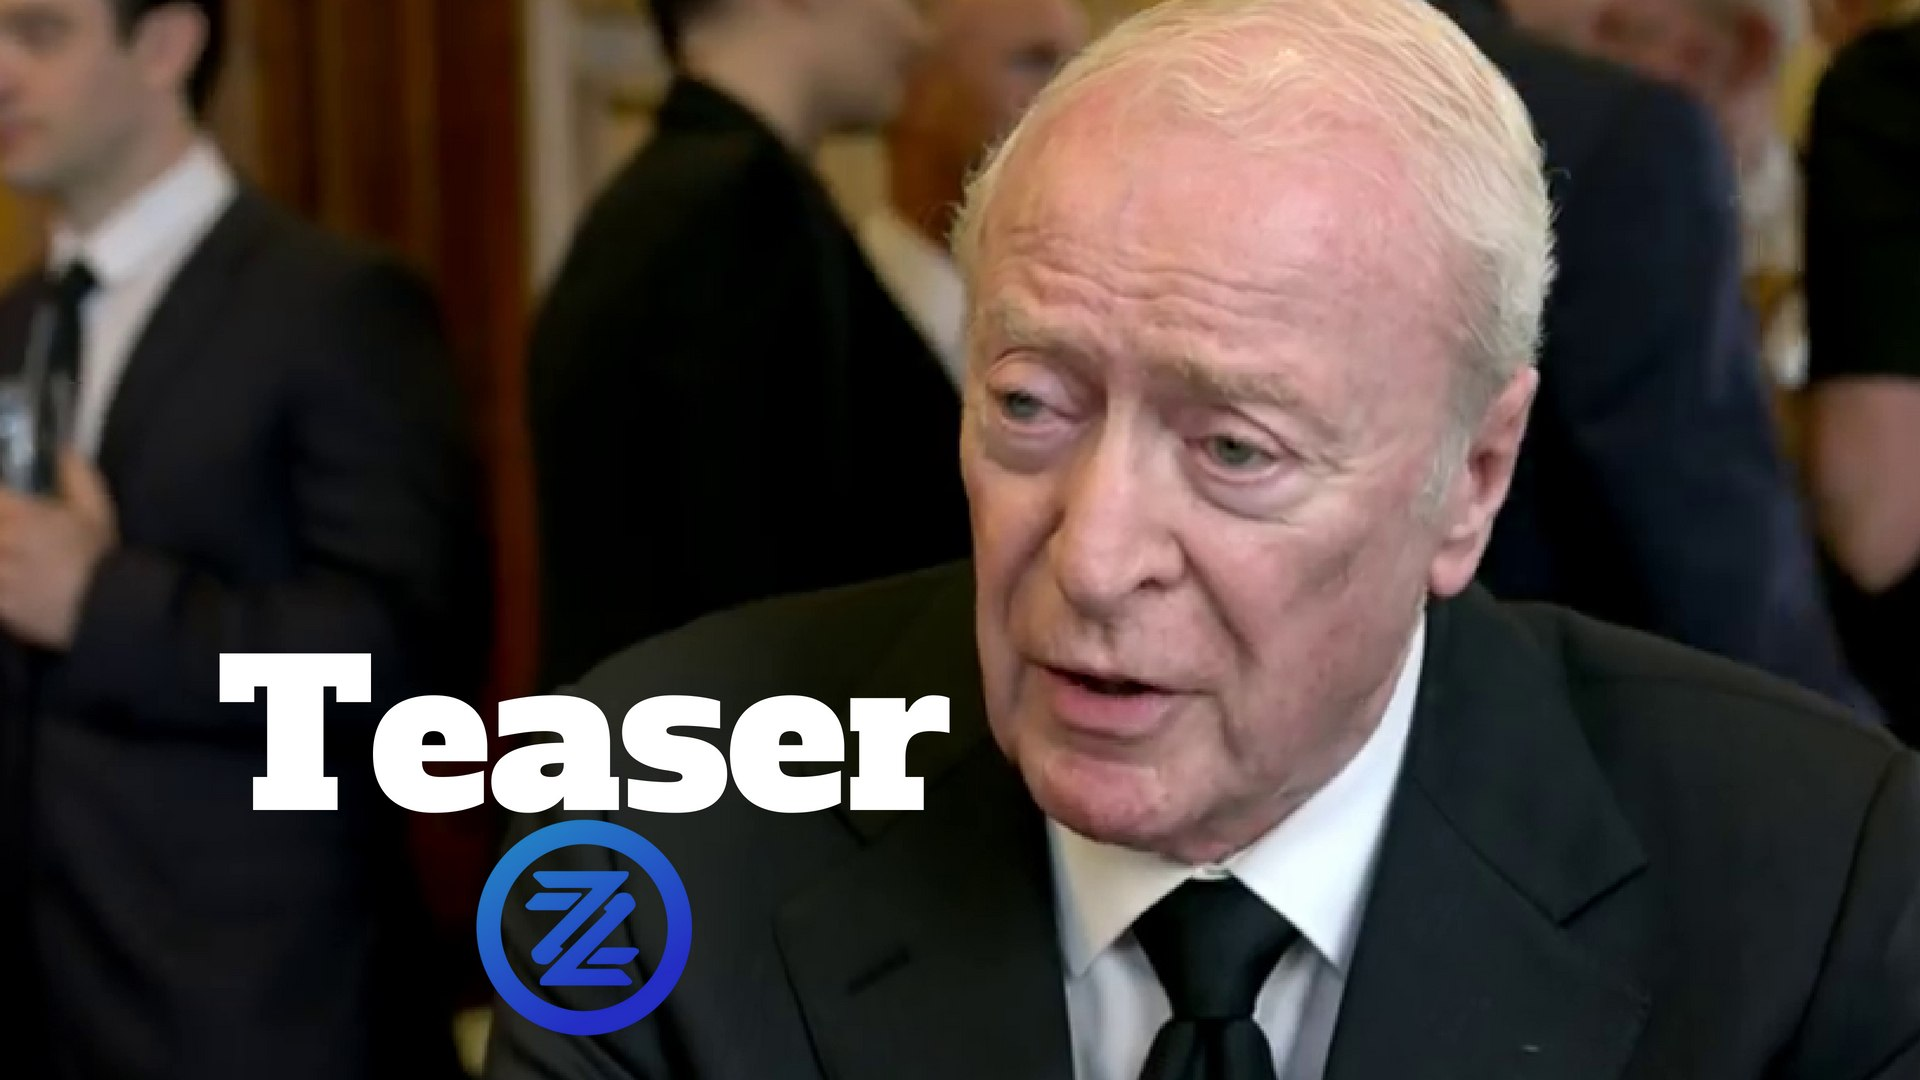 King of Thieves International Teaser Trailer #1 (2018) Michael Caine Drama Movie HD